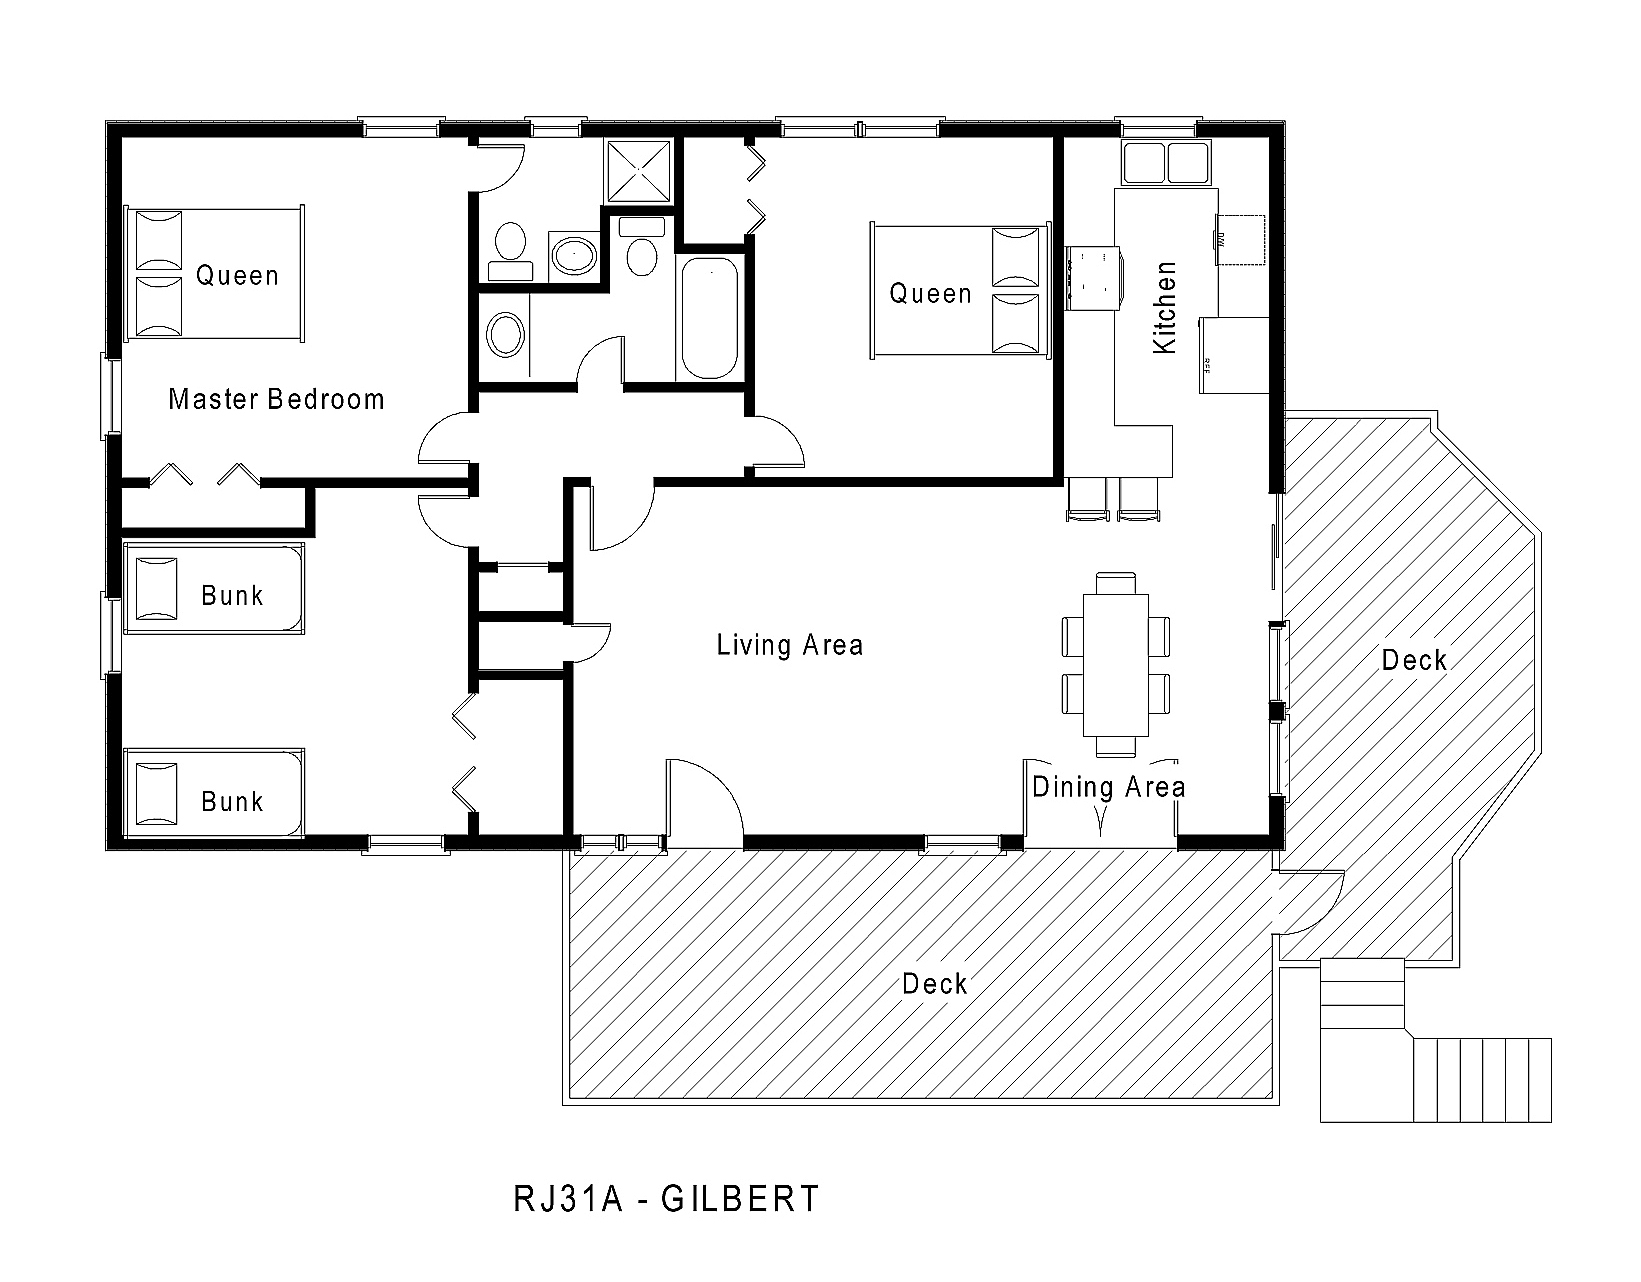 Rj31a gilbert floorplan level midgett realty for Single level floor plans